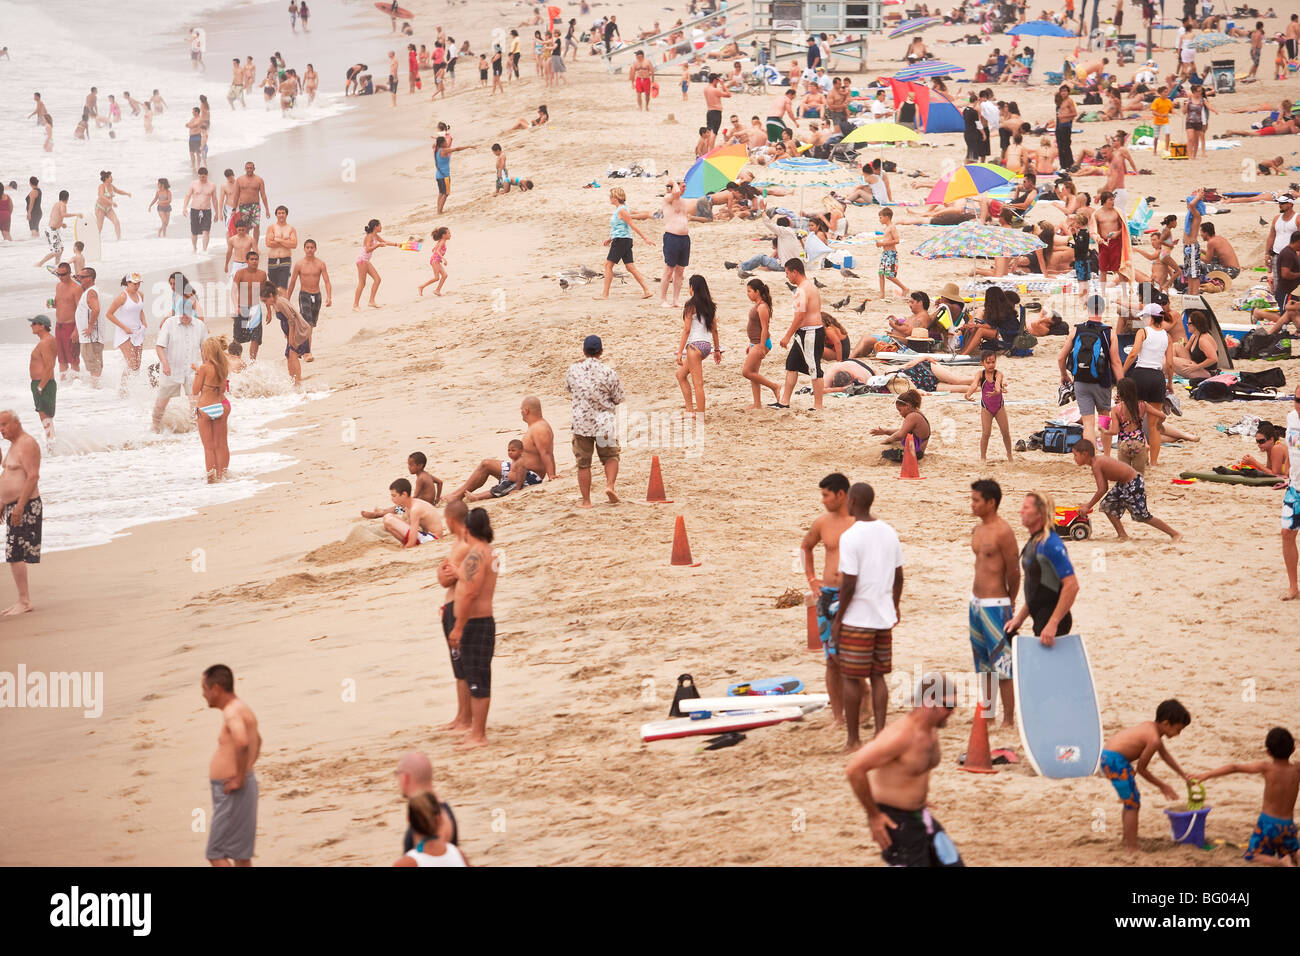 crowd of people at Manhattan Beach, California, United States of America - Stock Image